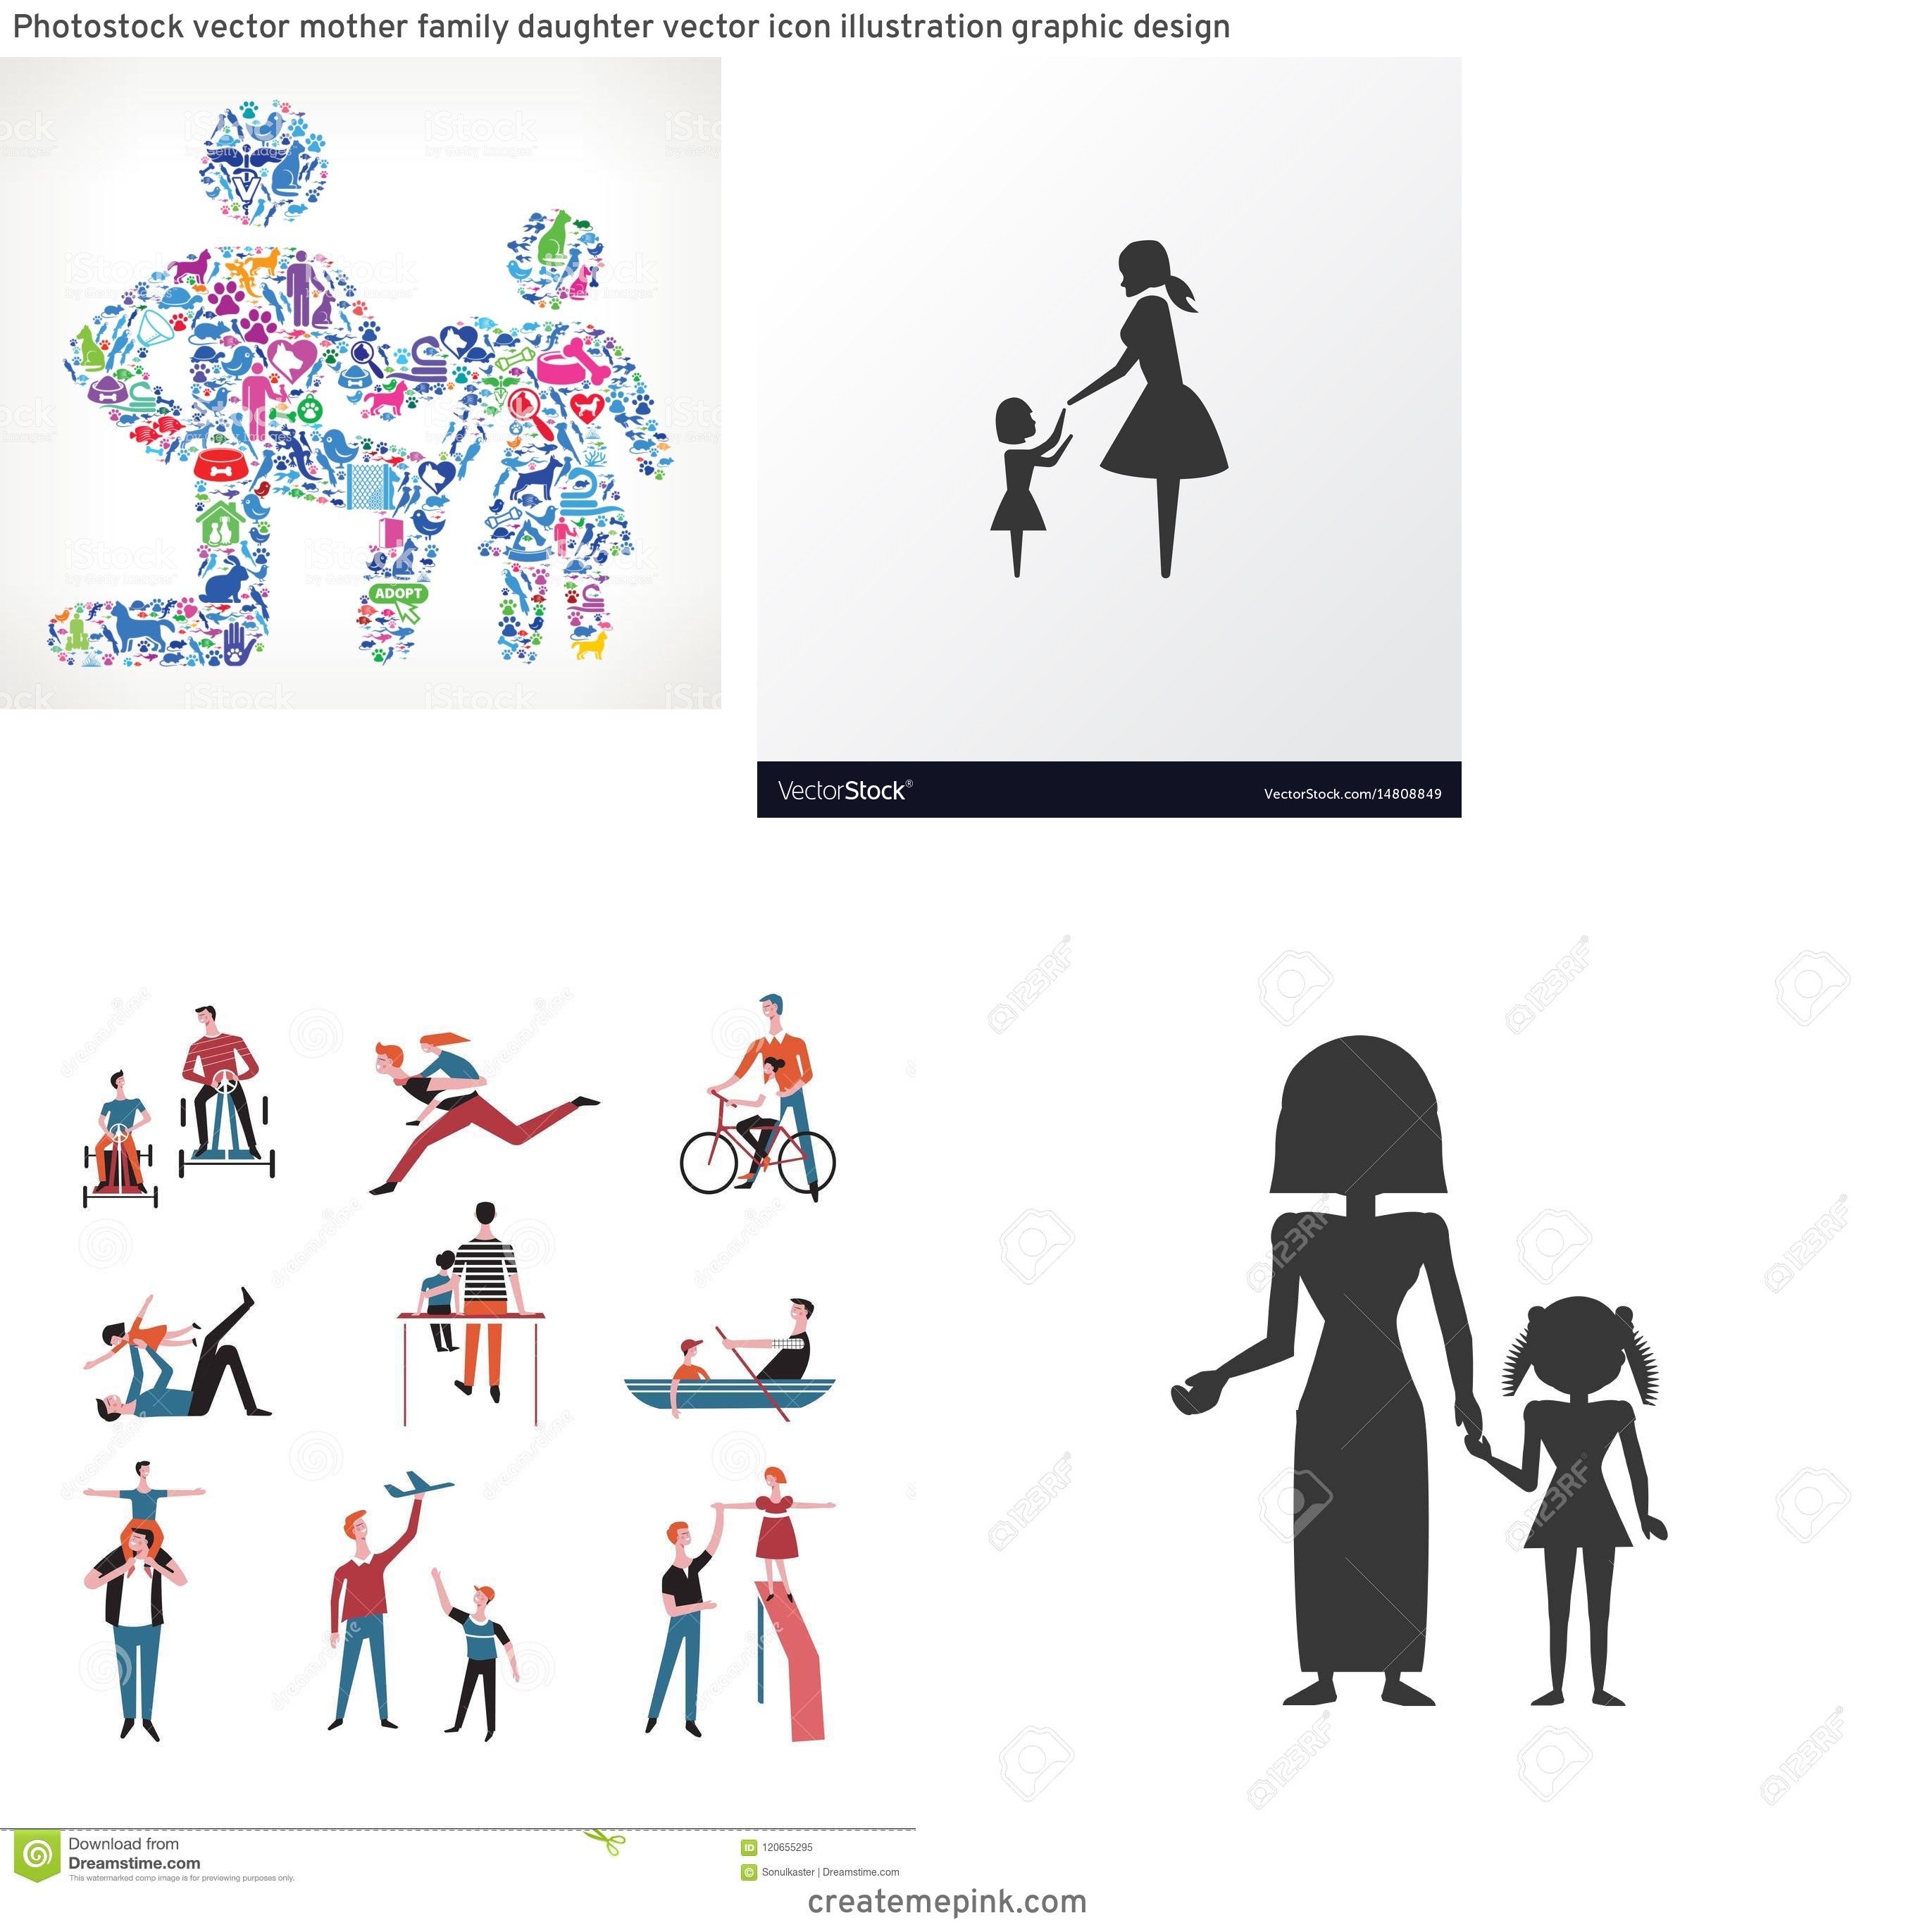 Daughter Vector Icons: Photostock Vector Mother Family Daughter Vector Icon Illustration Graphic Design